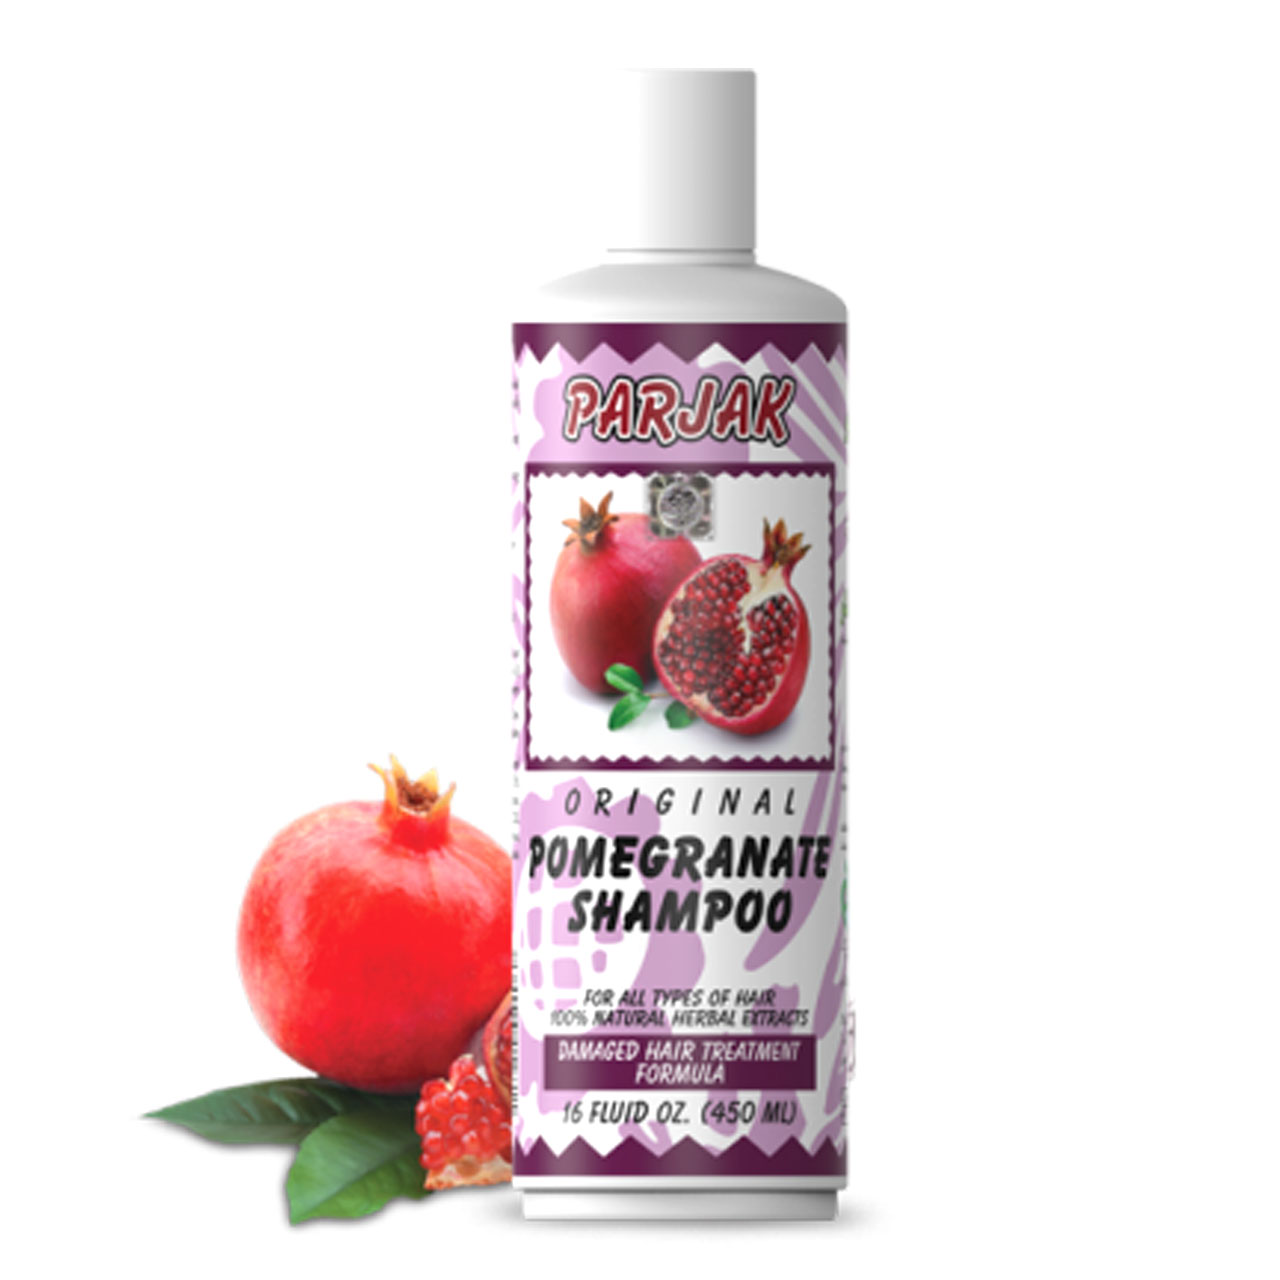 Pomegranate-450g-shampoo